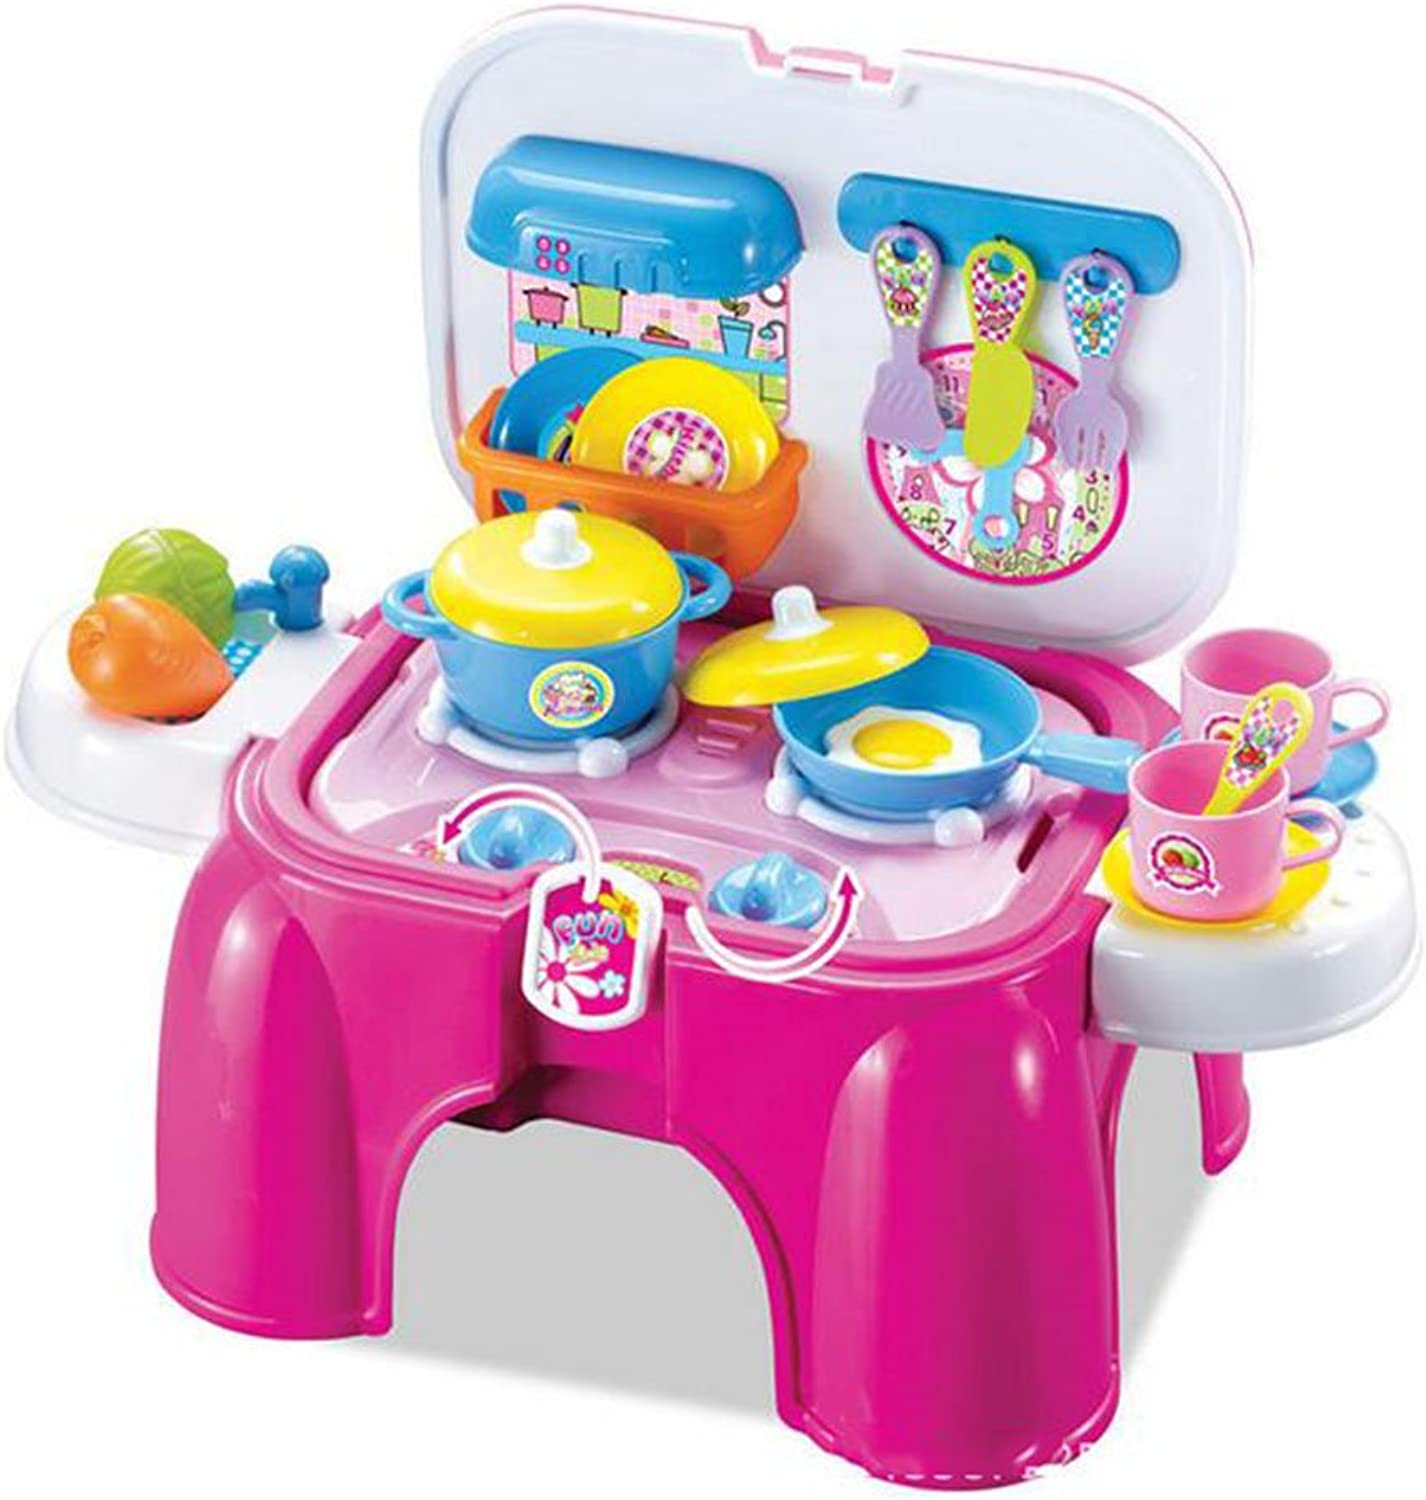 CFZHANG Kitchen Set Kids Plastic Pretend Cutting Fruit Bundle With Accessories Portable Seat Educational Toys Role Playing Game